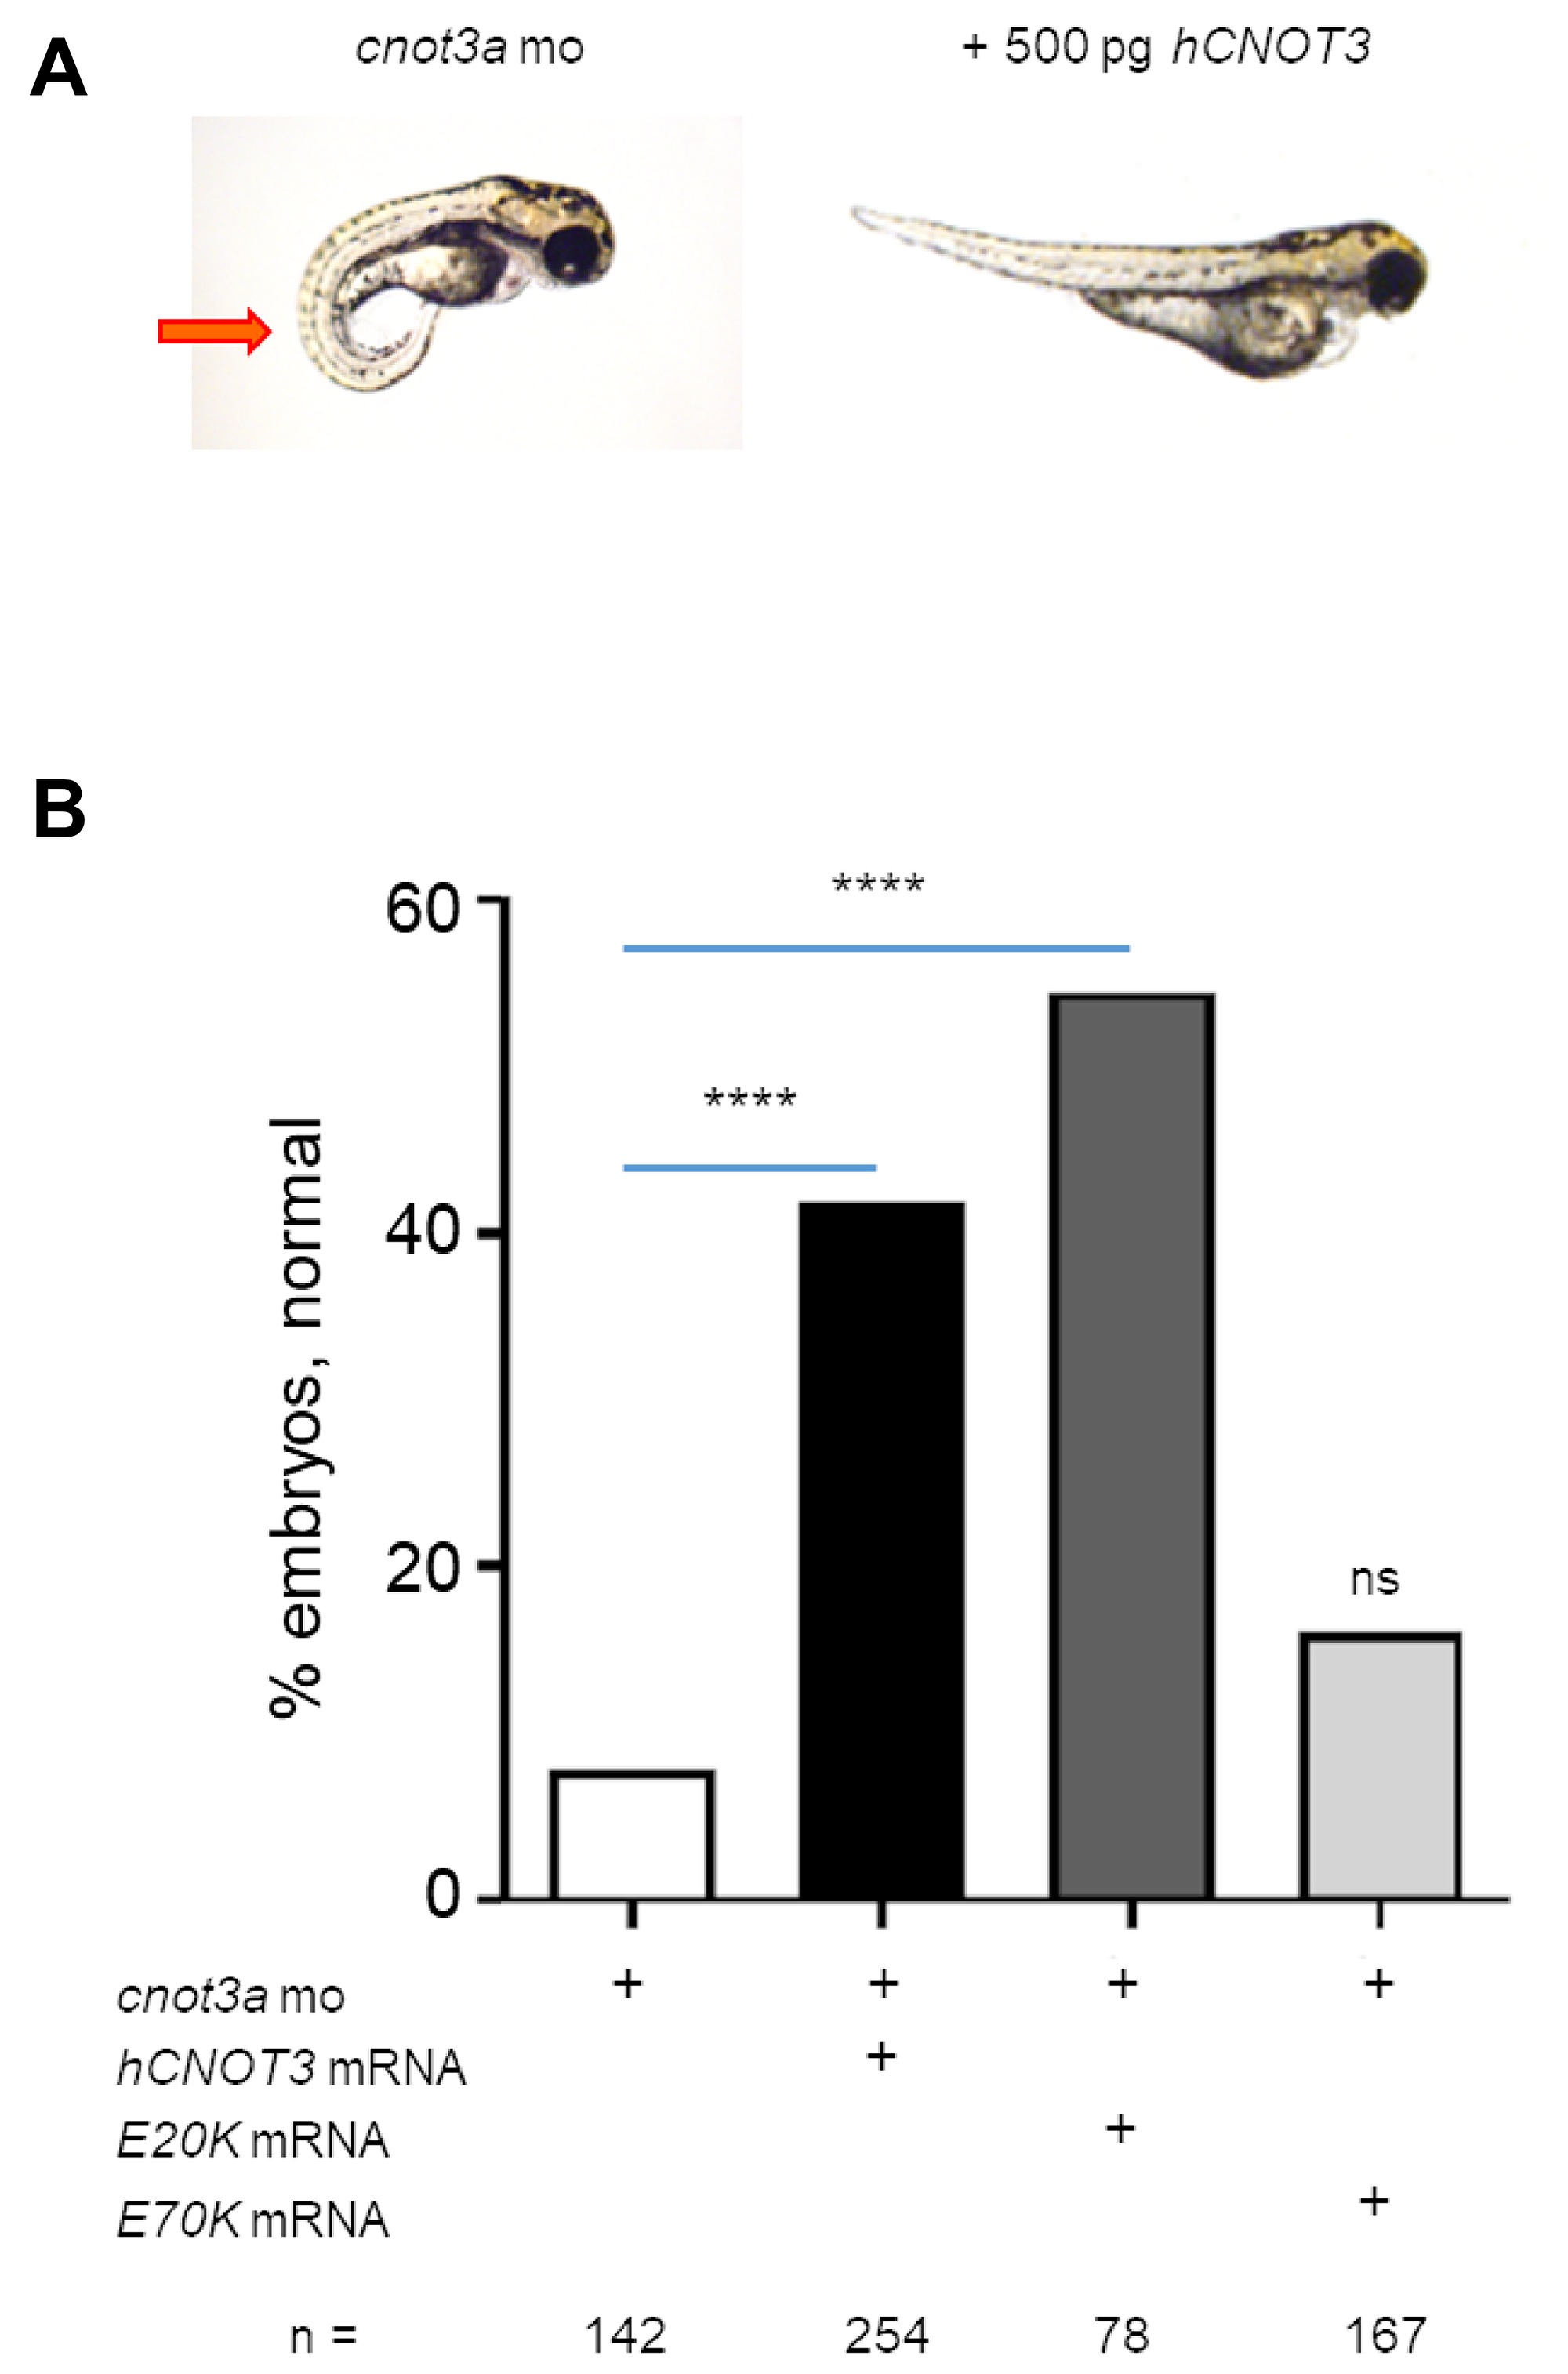 Functional characterization of CNOT3 variants.